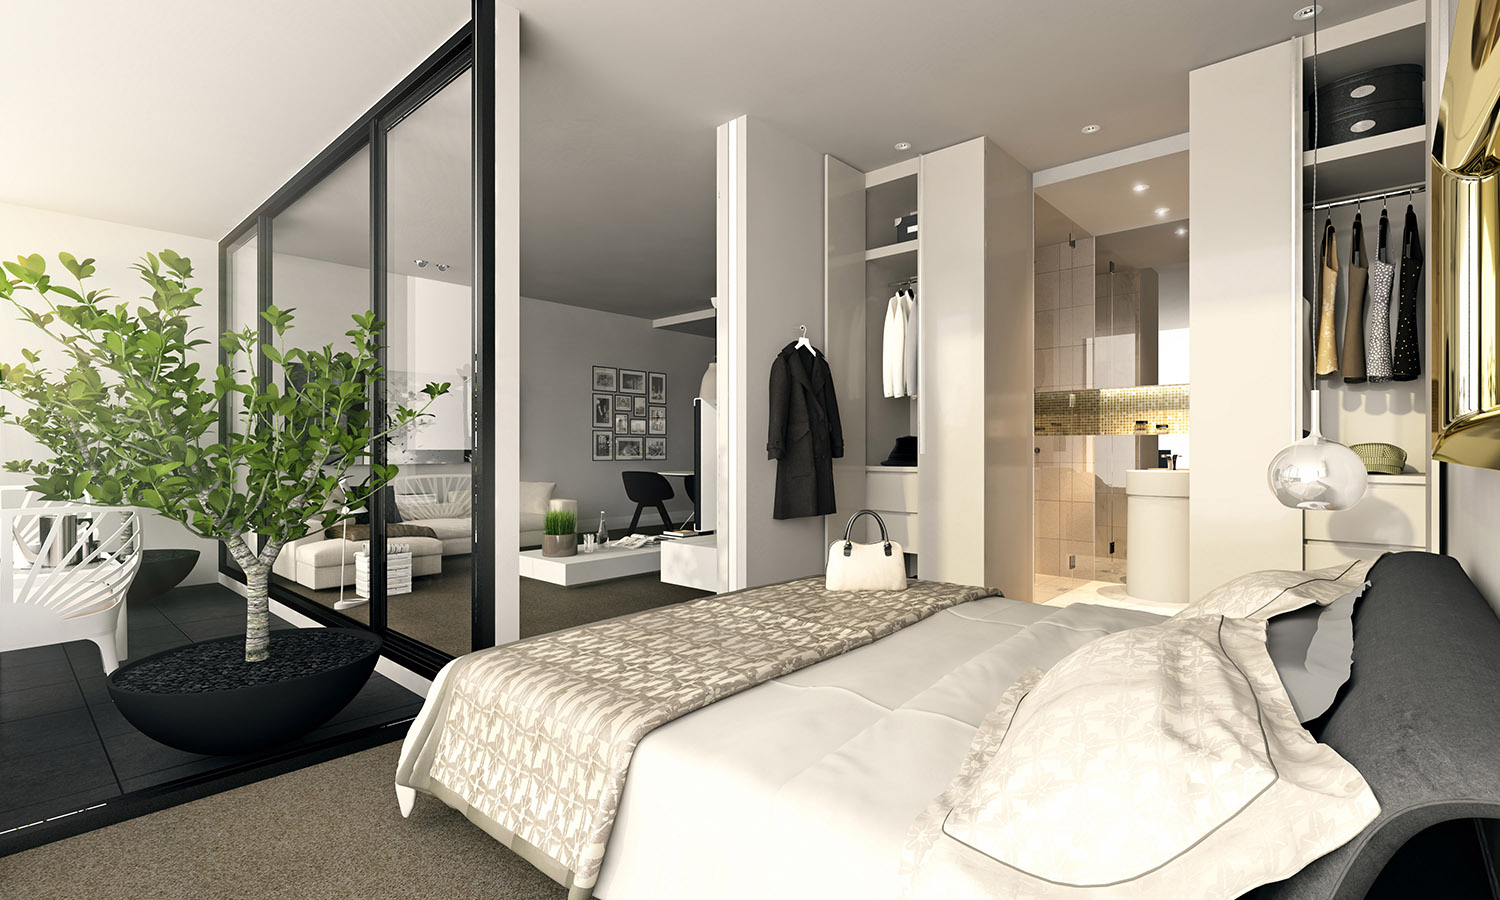 Studio apartment interiors inspiration for Studio apartment design